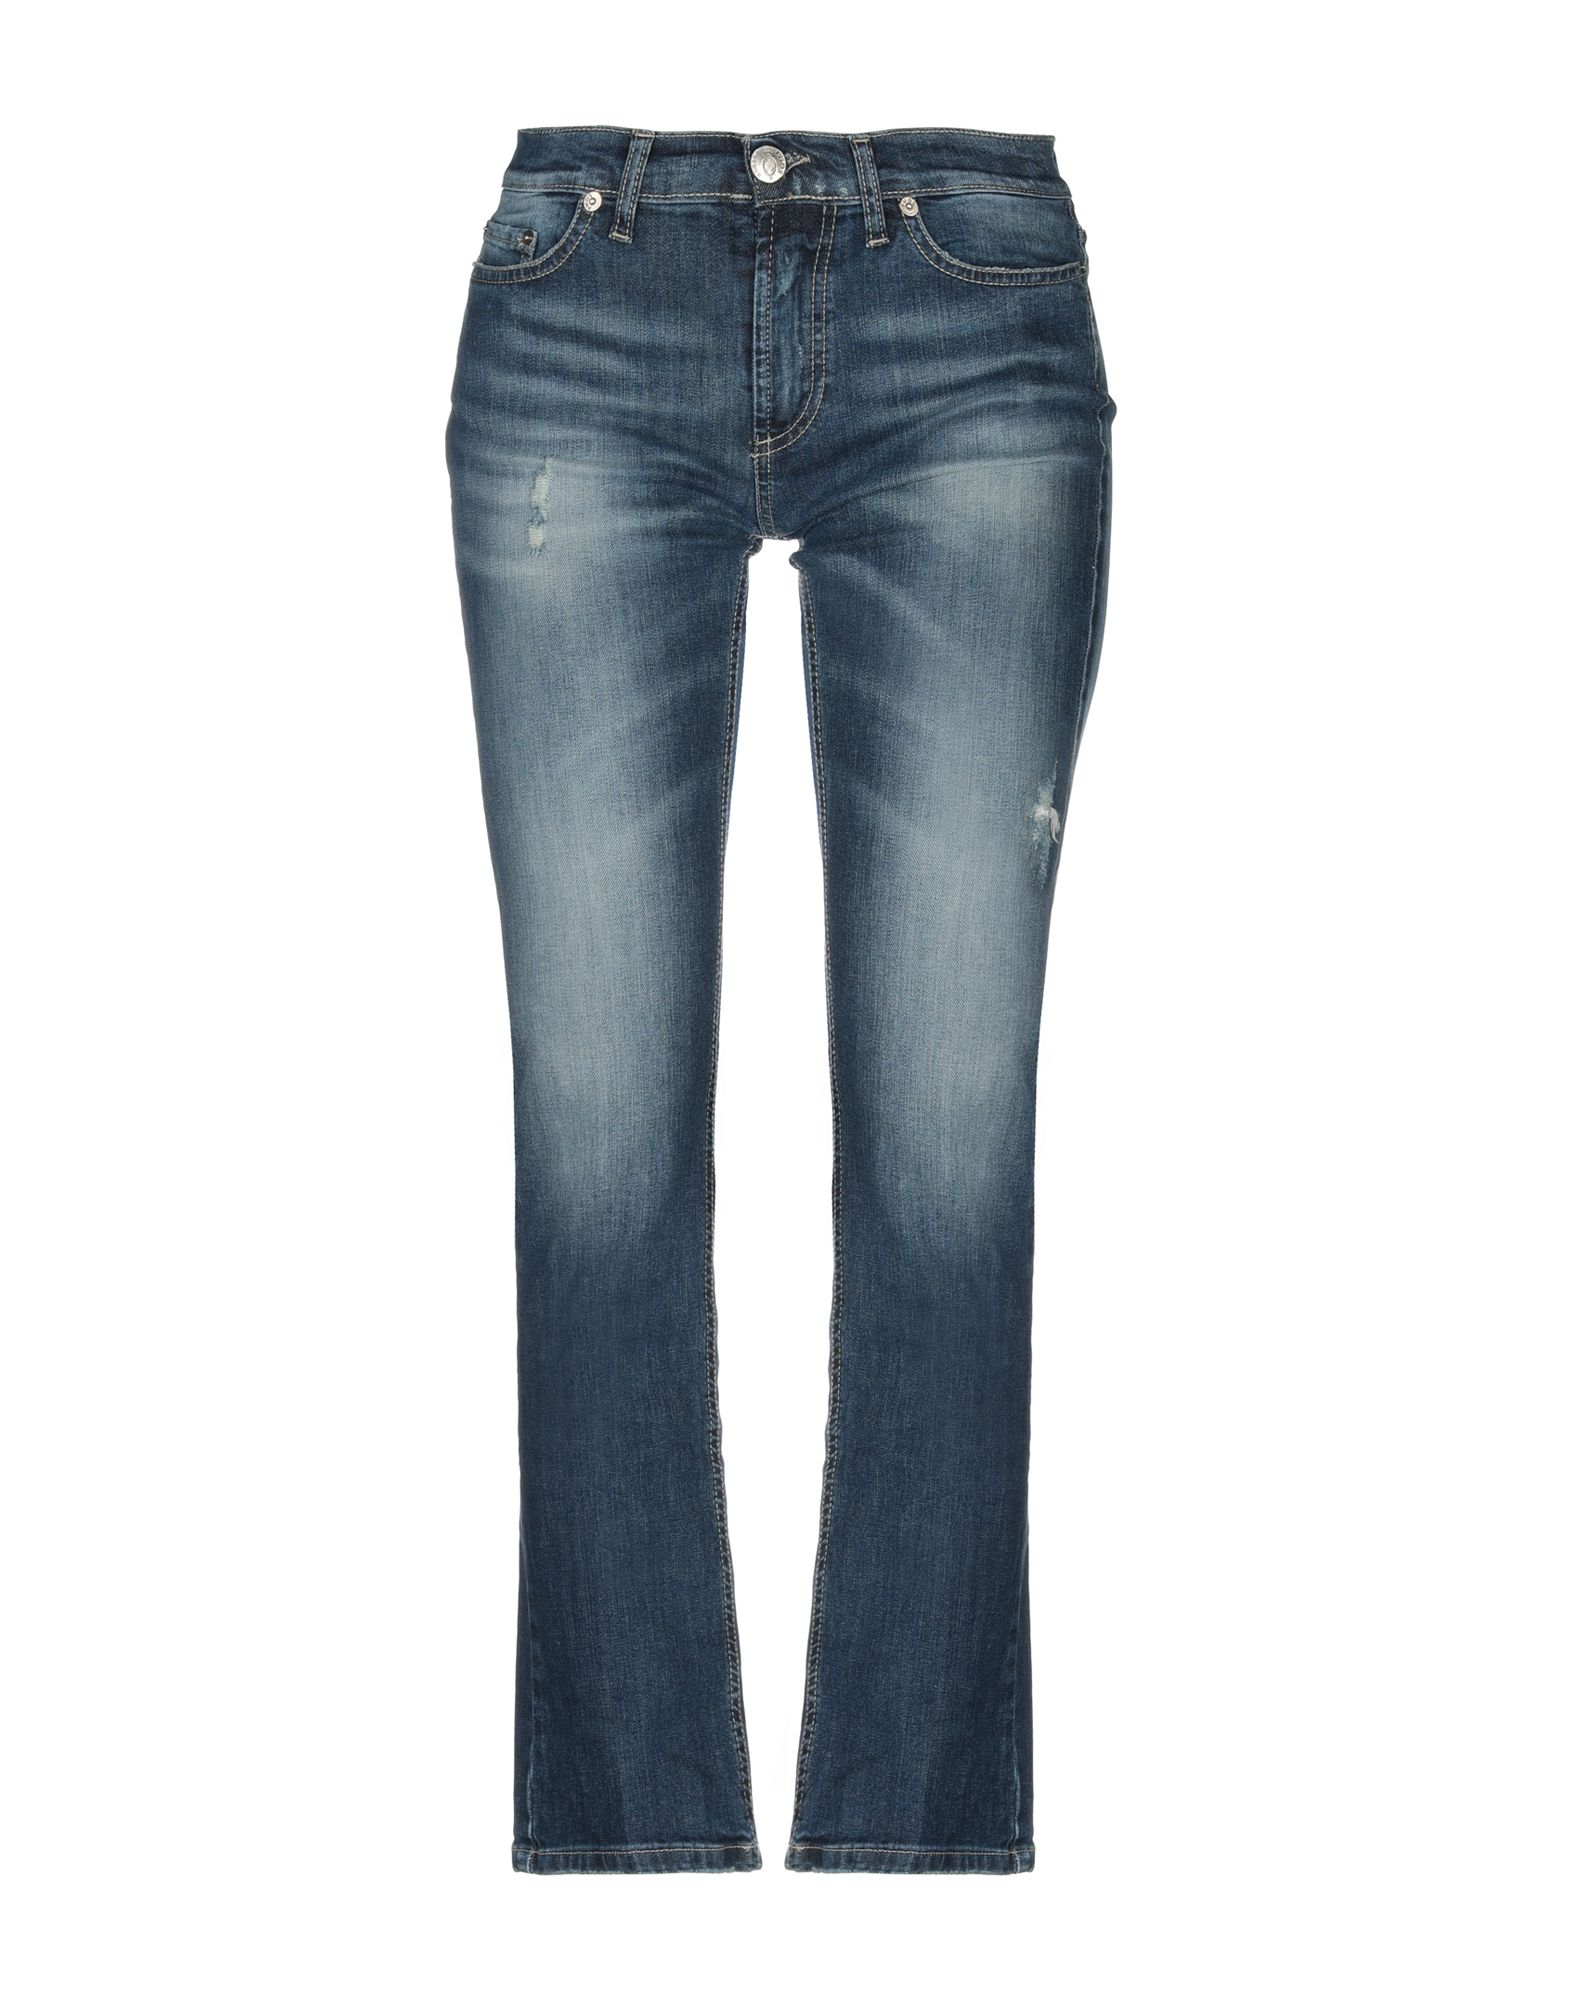 PMDS PREMIUM MOOD DENIM SUPERIOR Джинсовые брюки pmds premium mood denim superior джинсовые брюки